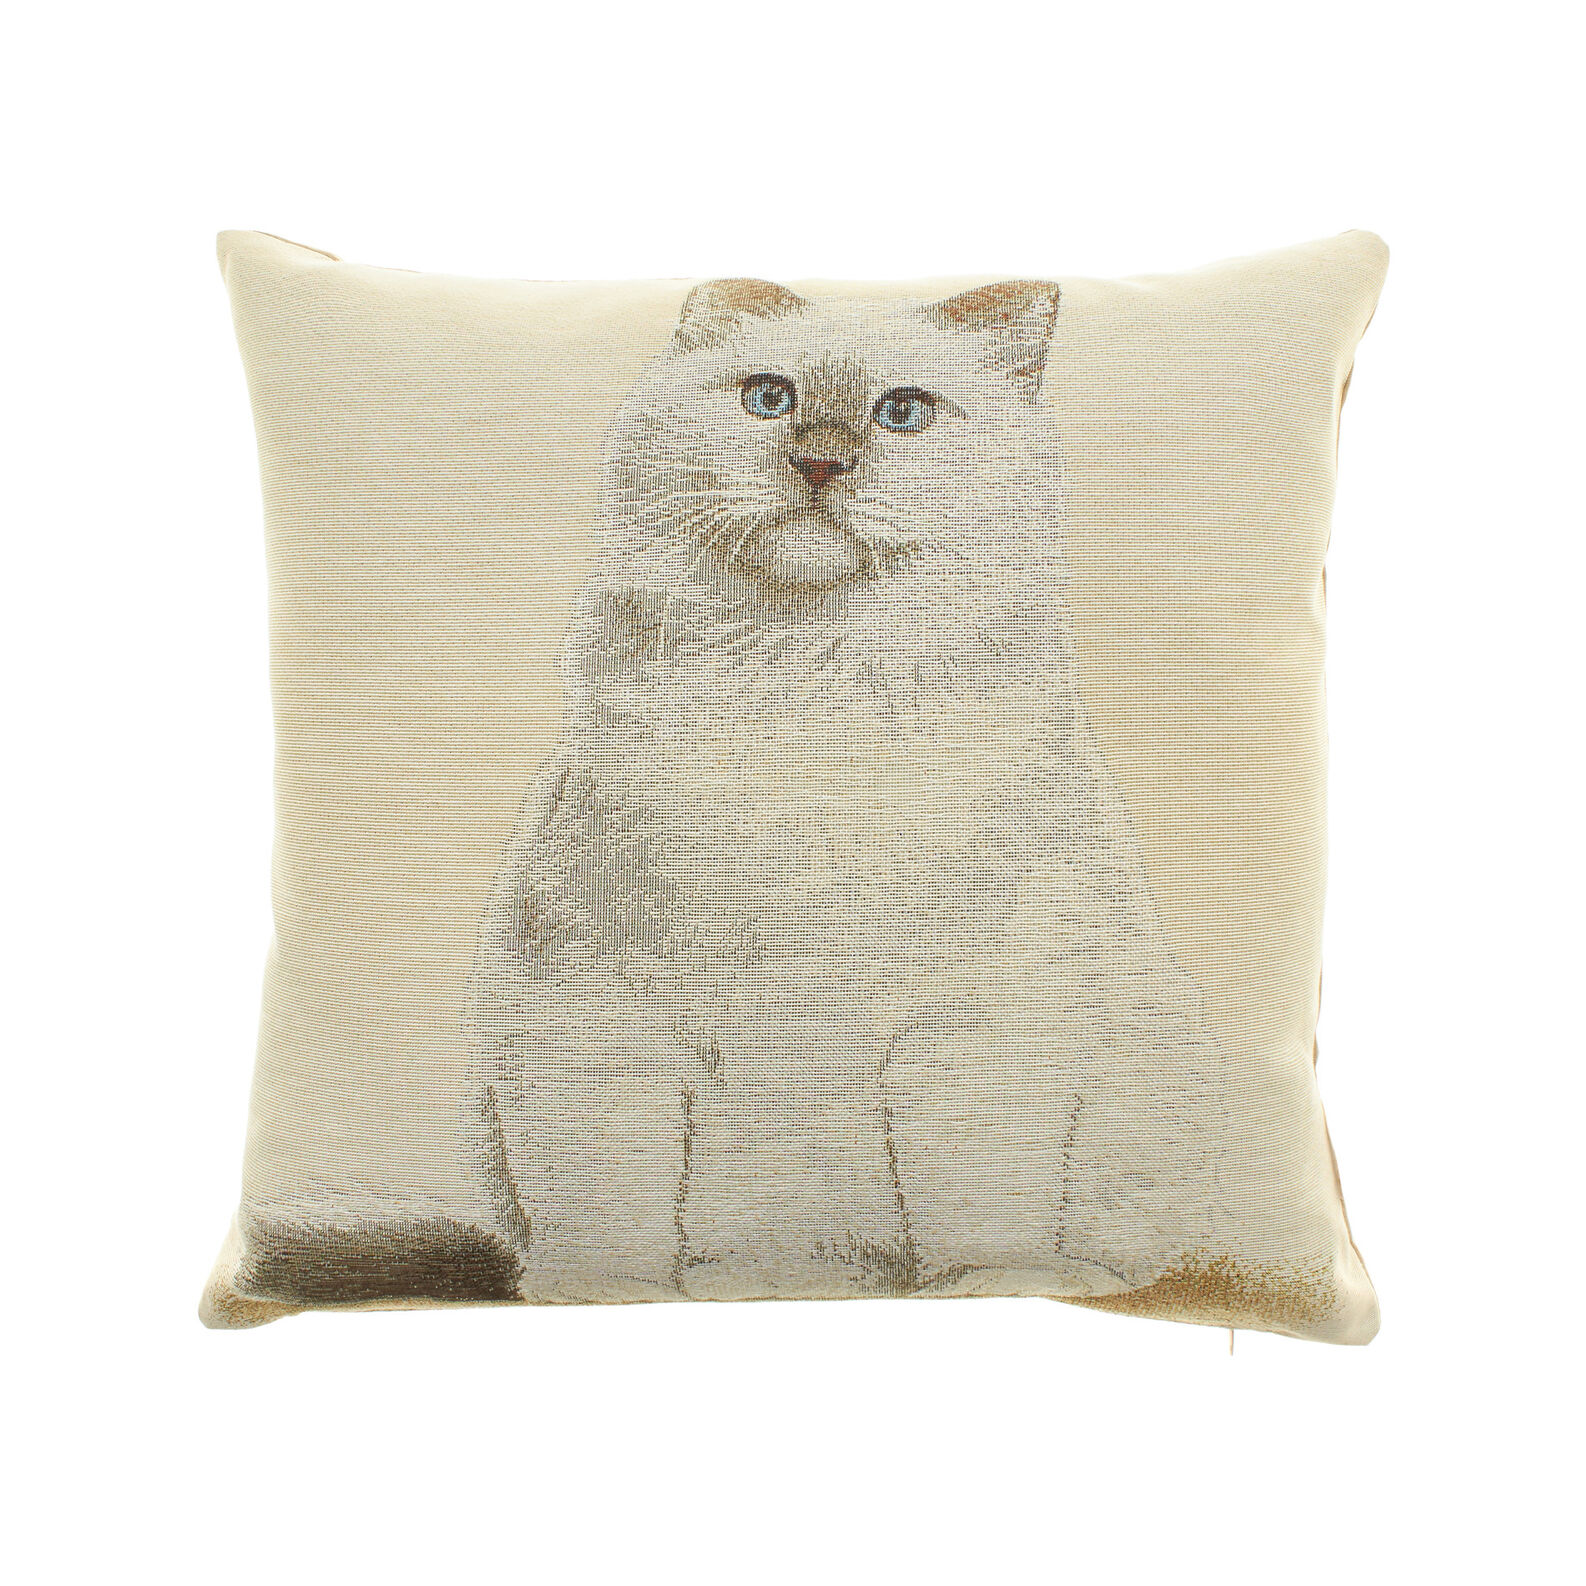 Cat Print Sofa Cushion Cover D Polyester, Linen - 45*45cm for $ - Compare prices of products in Living Room from Online Stores in Australia. Save with palmmetrf1.ga!